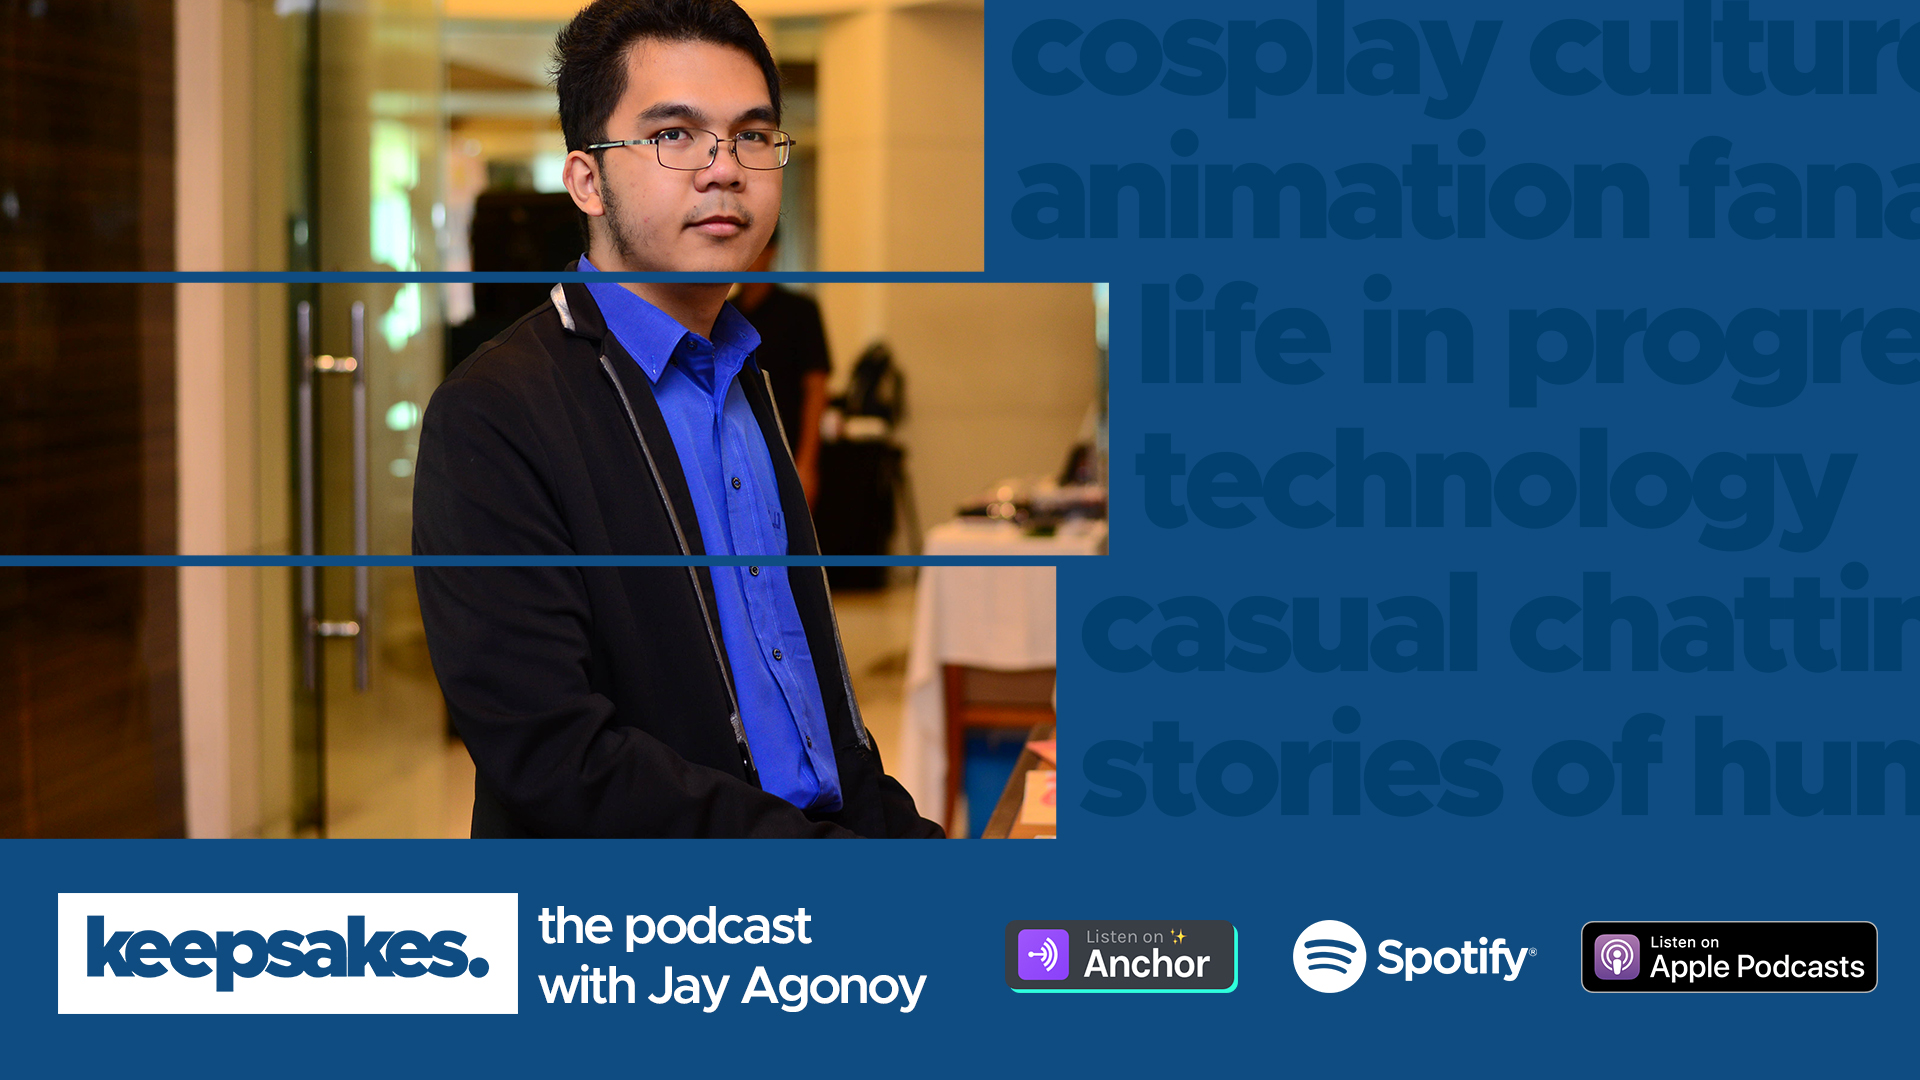 July-August 2020 Podcast Update: Cosplay, Events, Careers and Wotagei